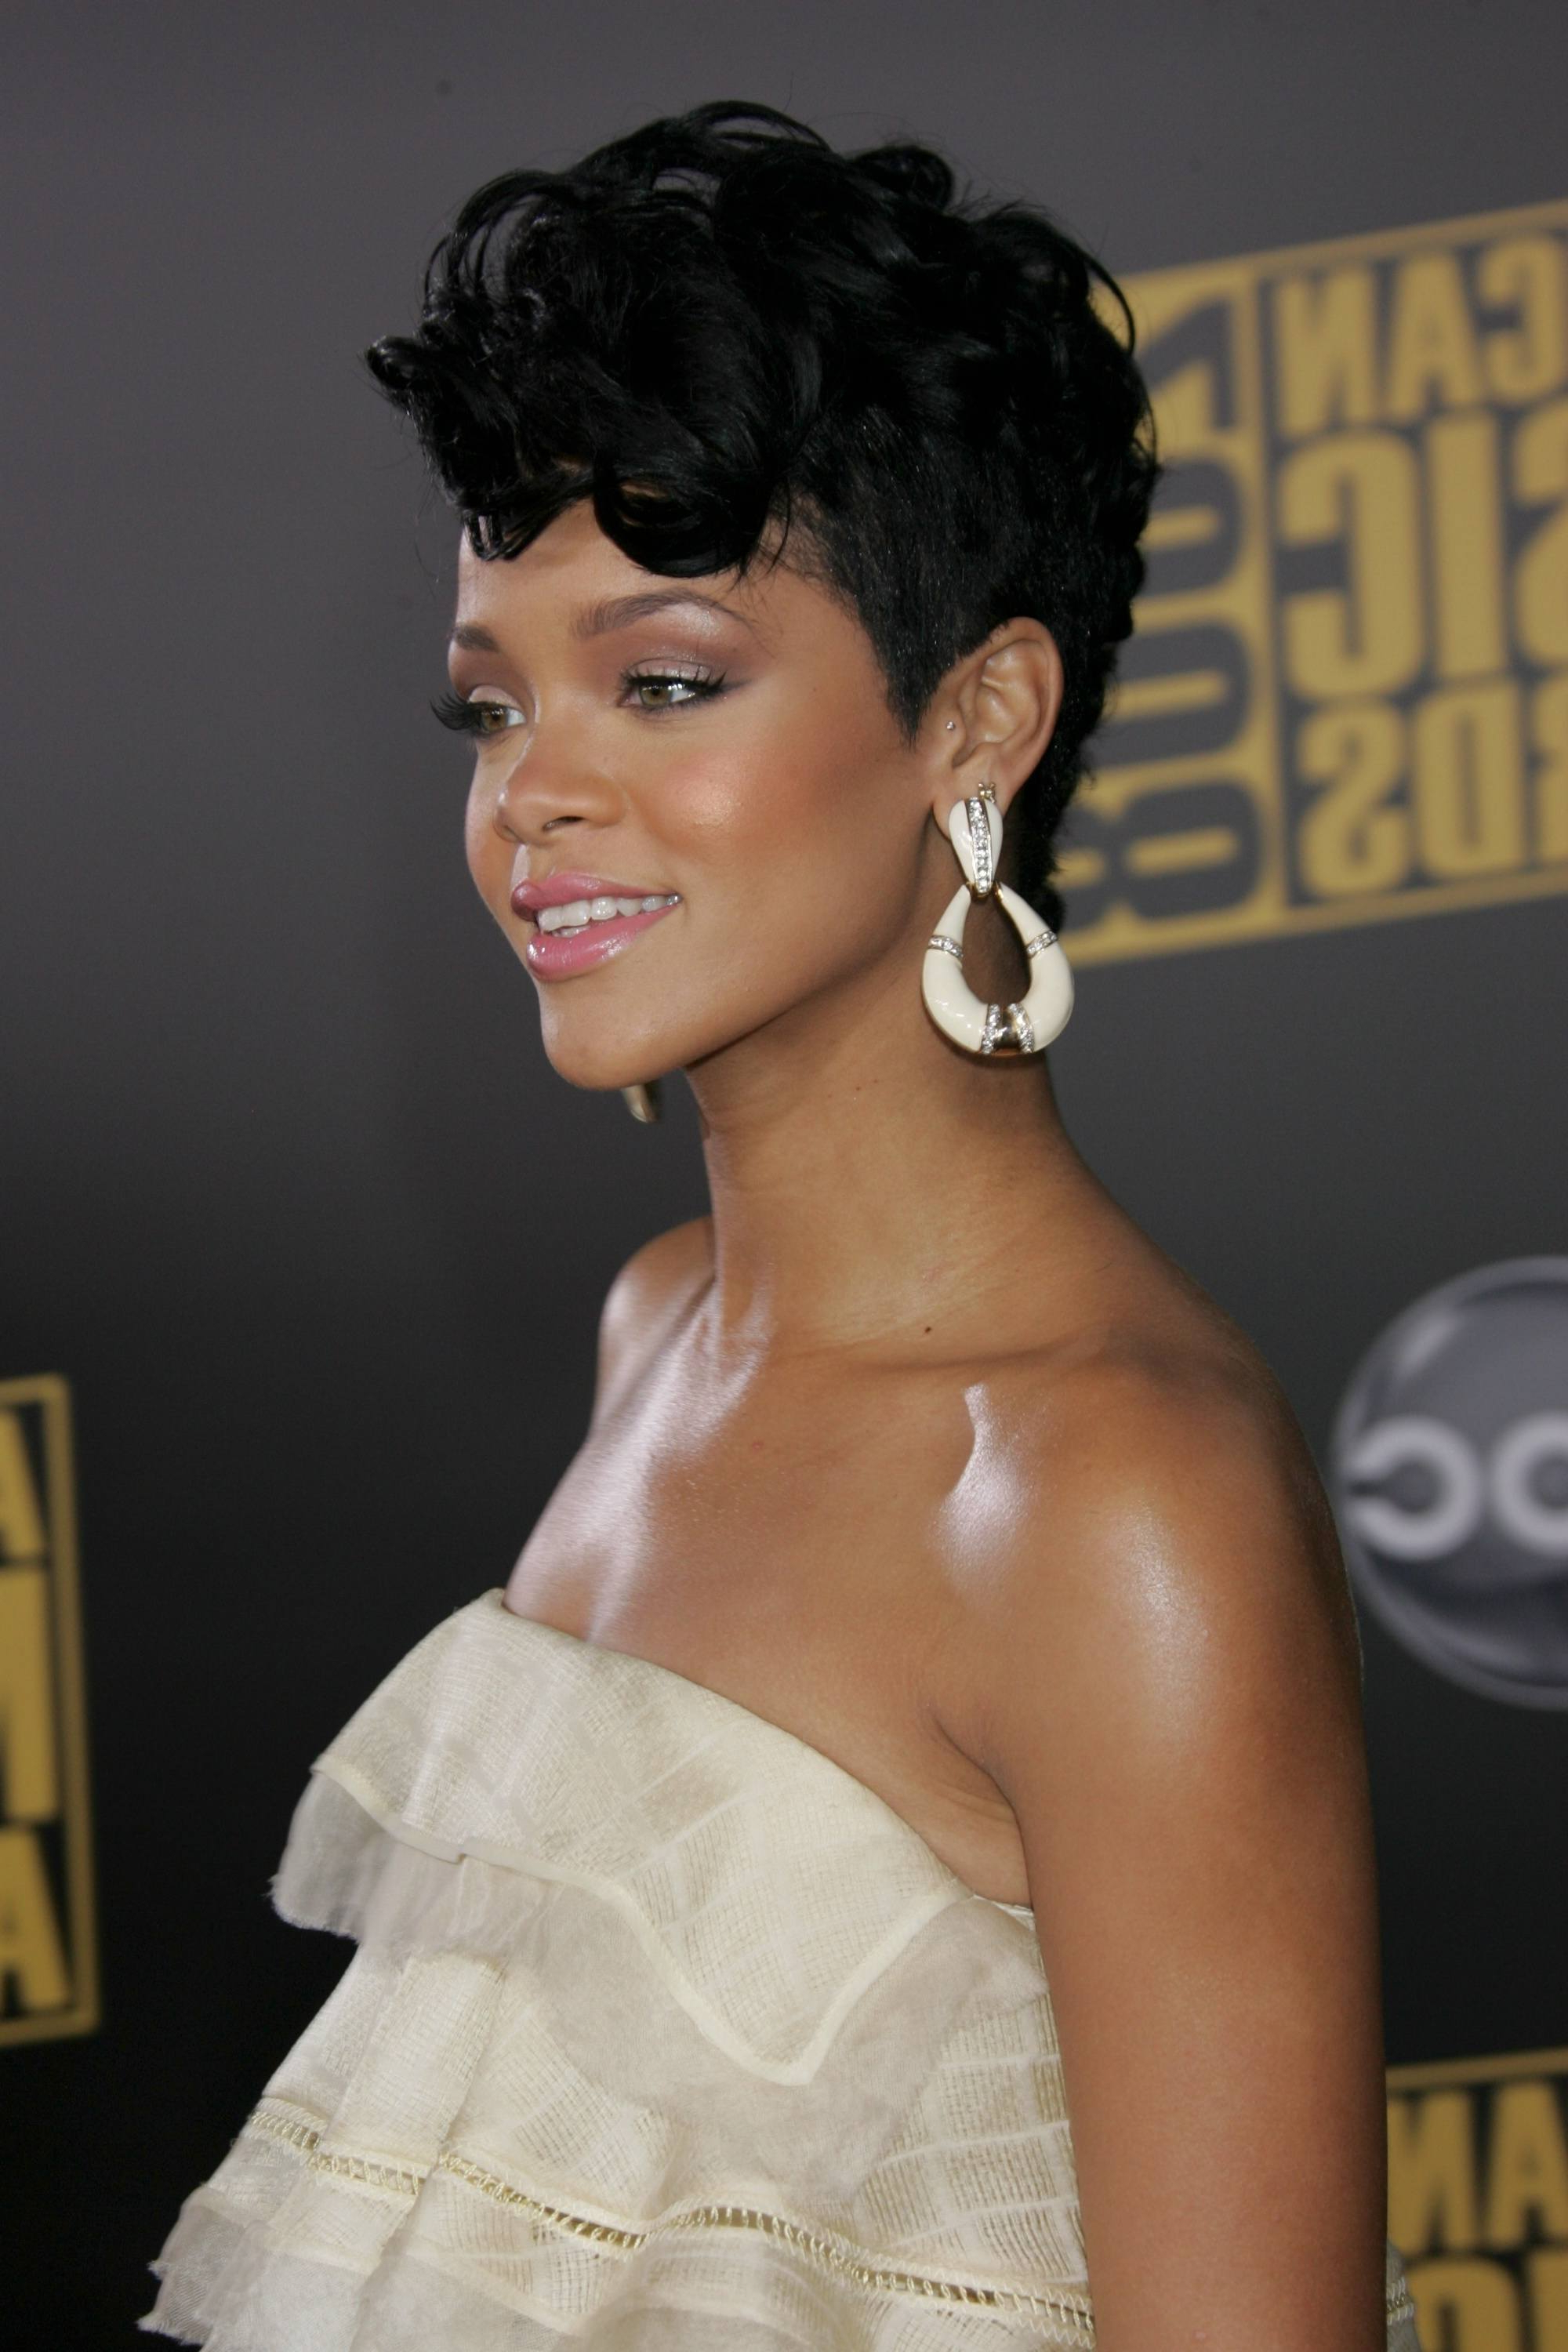 10 Mohawk Hairstyles For Black Women You Seriously Need To Inside Fashionable Rihanna Black Curled Mohawk Hairstyles (View 2 of 20)